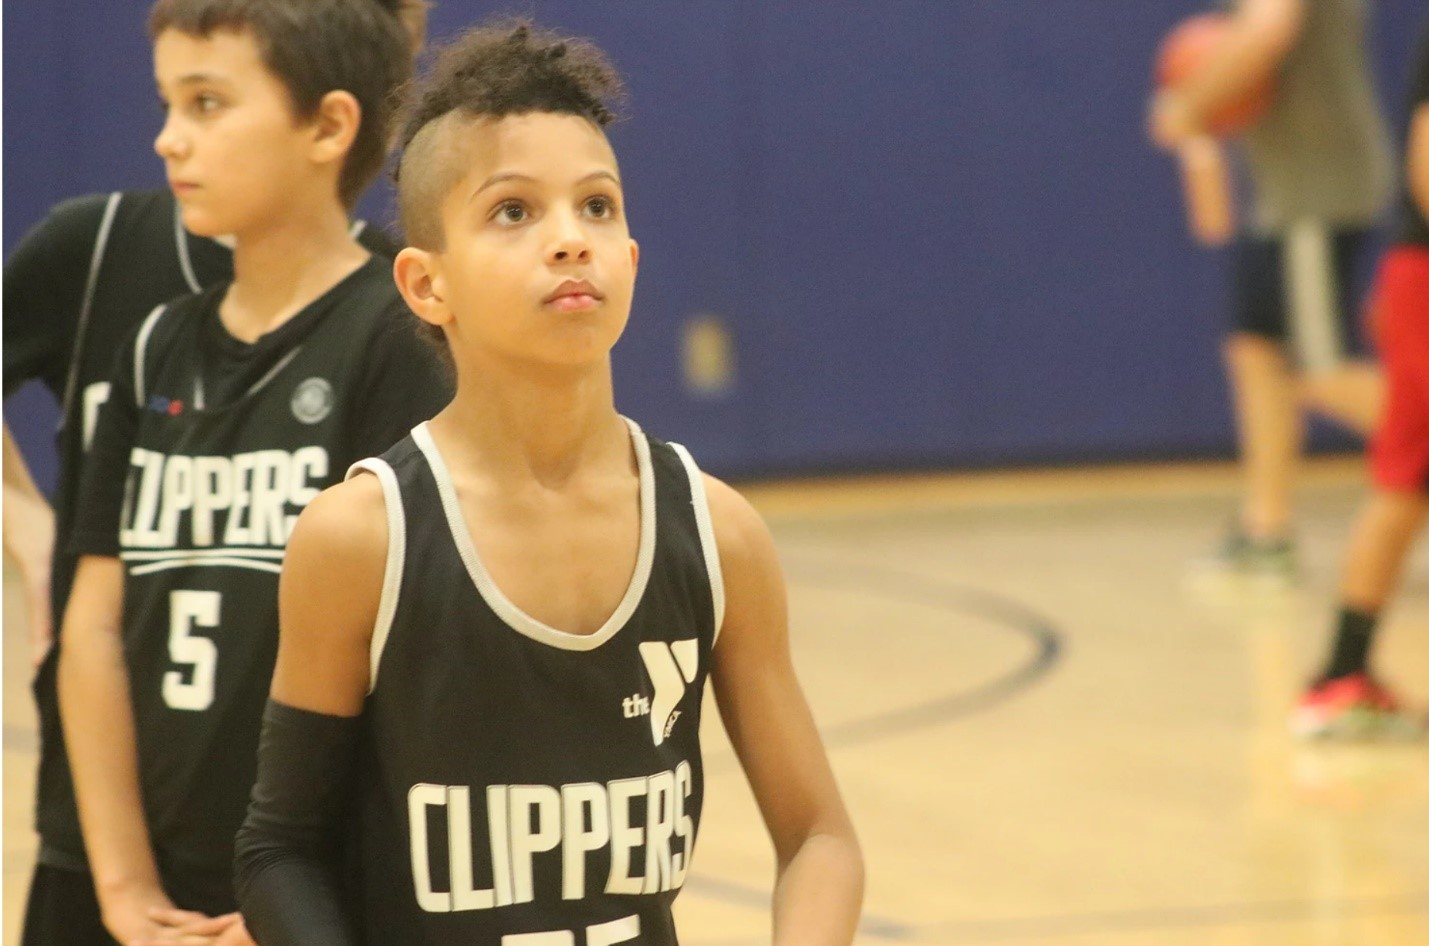 Multi-Talented 8-Year Old Leads Jr. Clippers to an Undefeated Season and Conference Championship